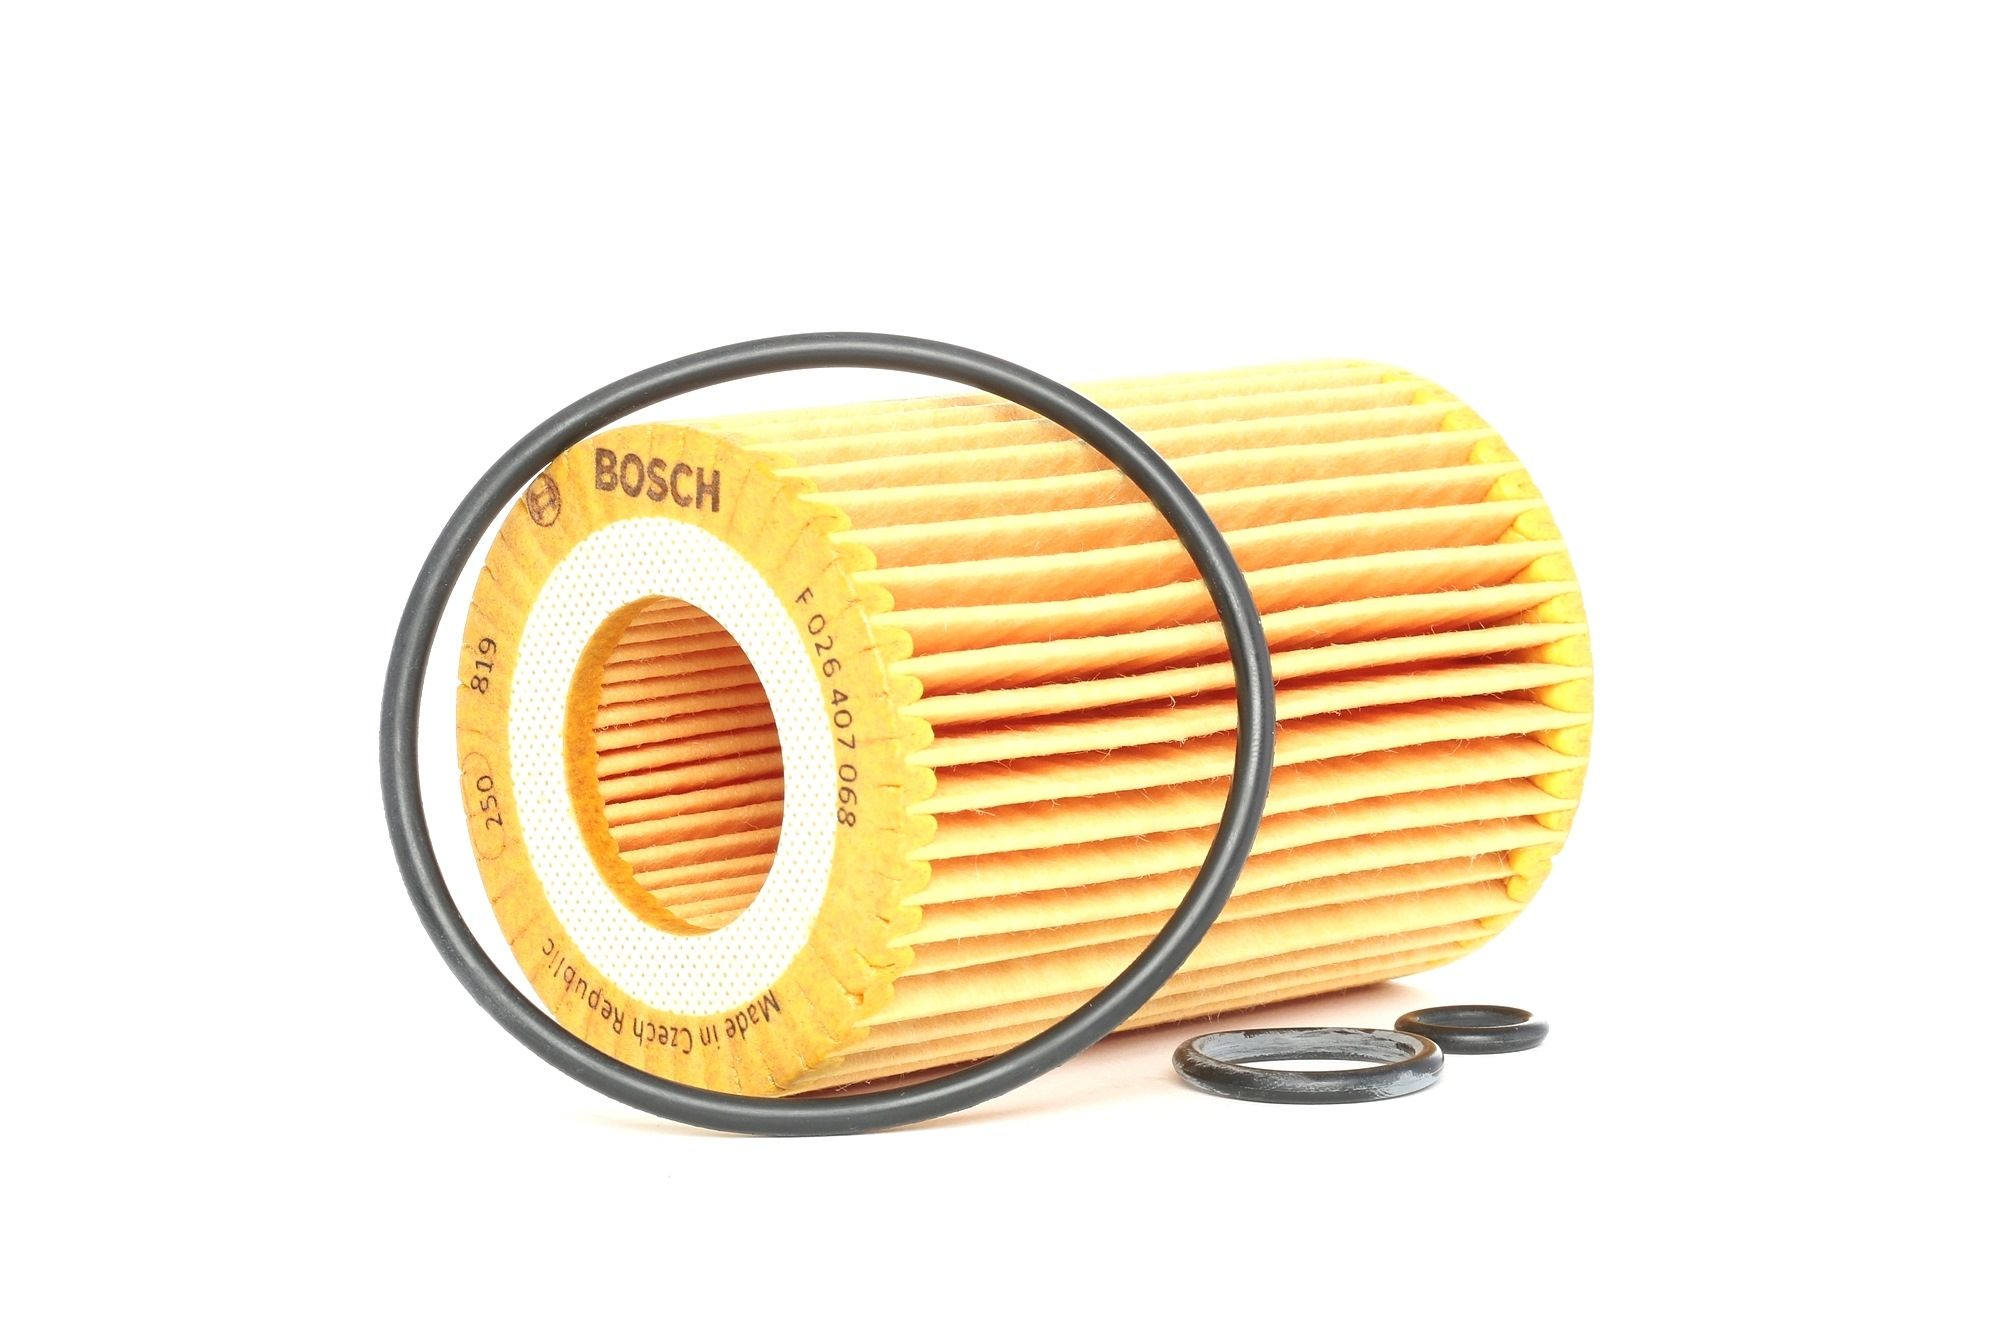 Engine oil filter BOSCH F 026 407 068 rating